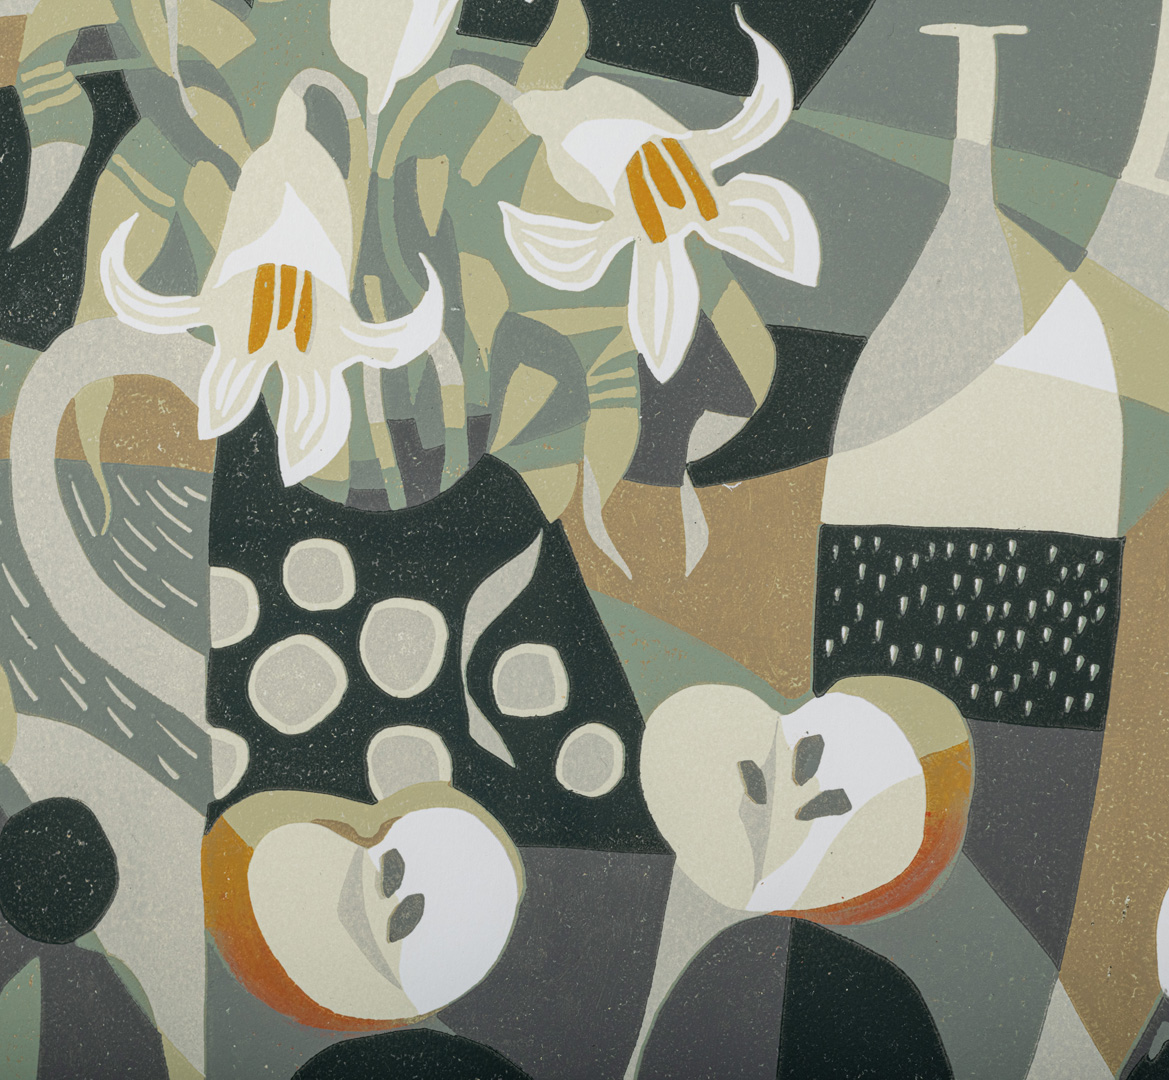 Detail of Apples and Lilies by Jane Walker